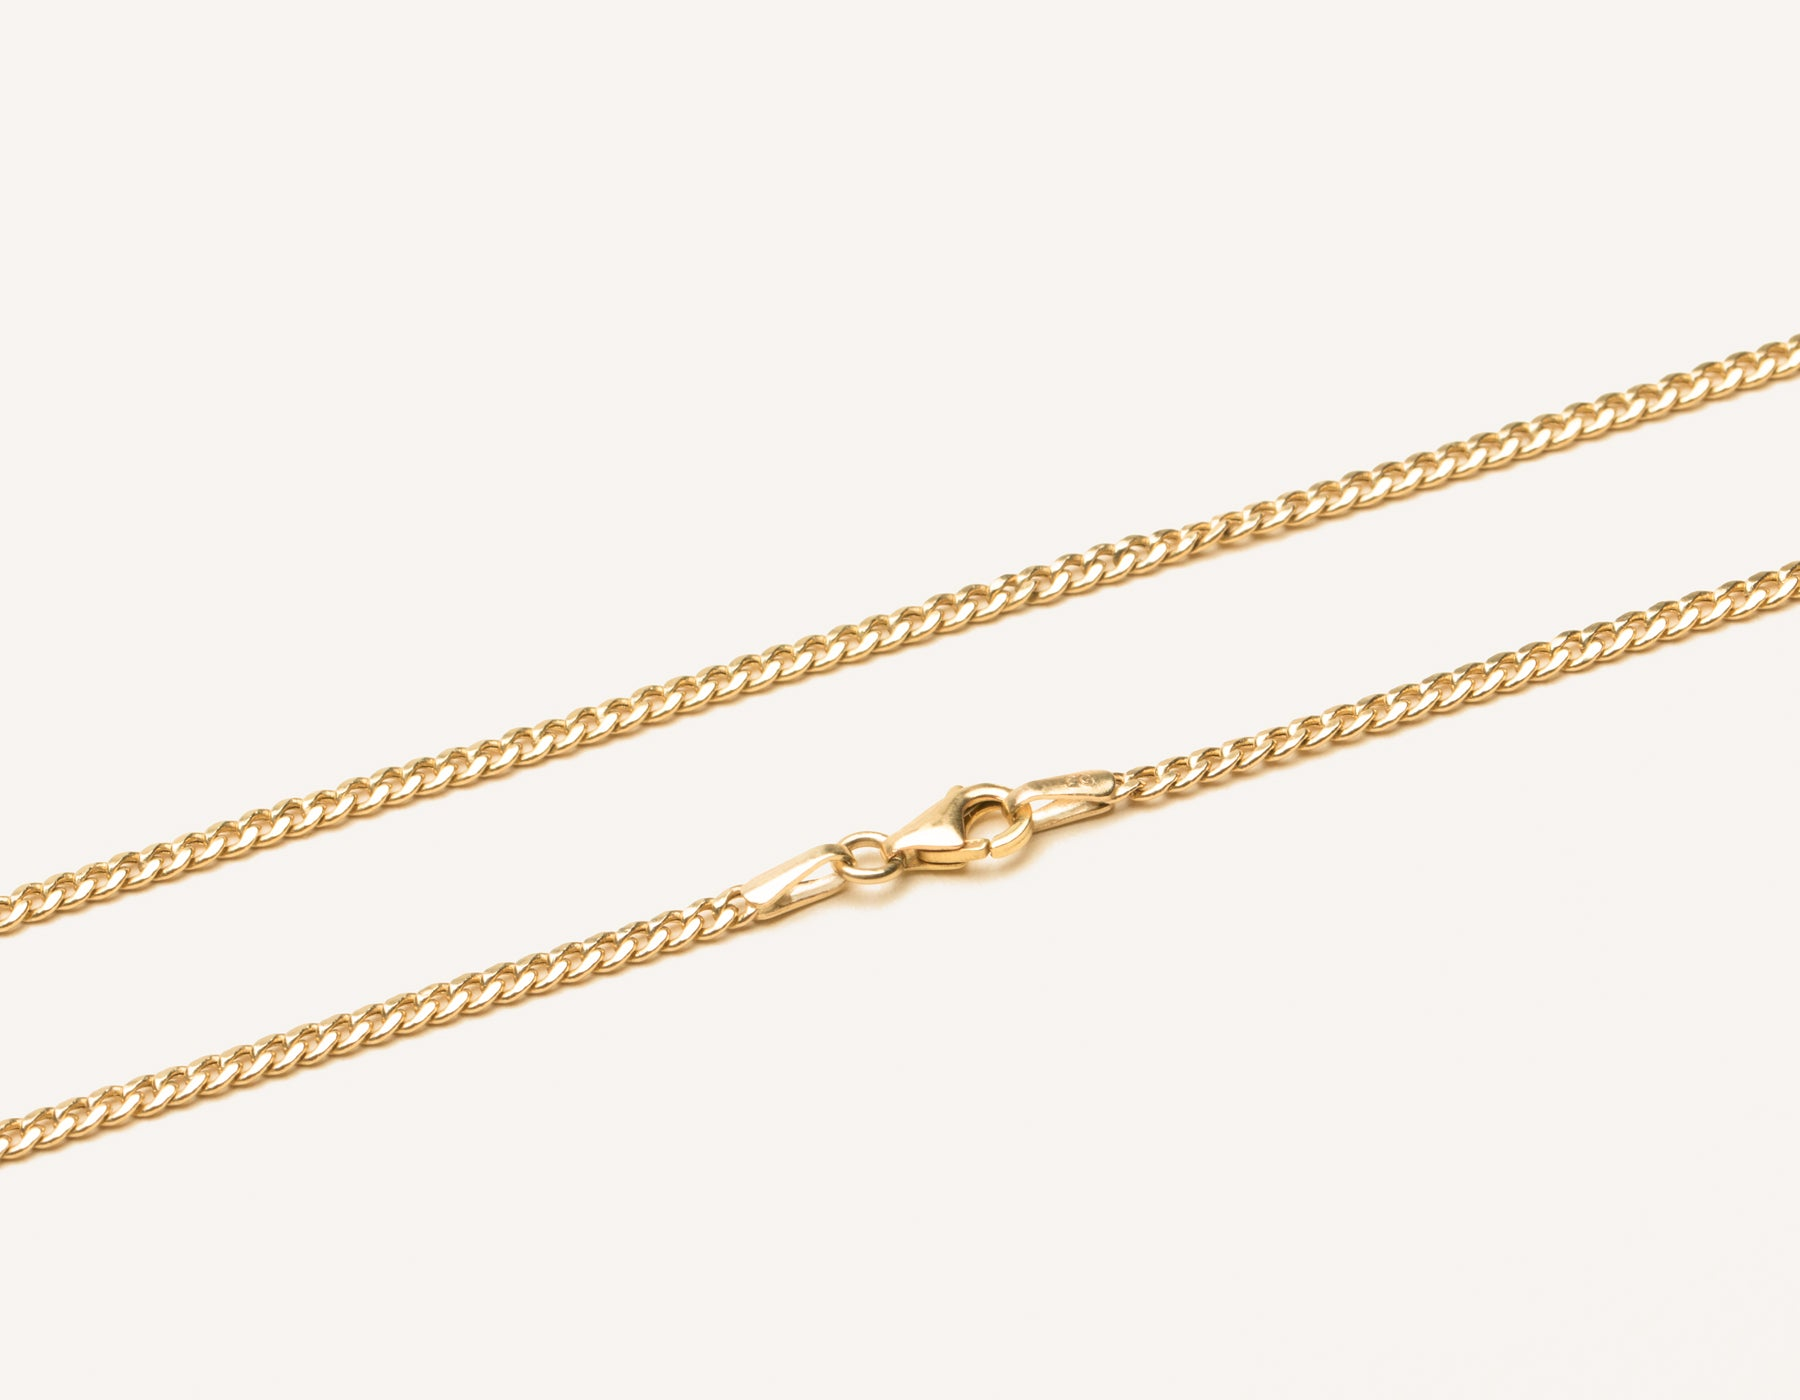 272ec8df21f Simple classic 14k solid gold Cuban Link Chain necklace with lobster clasp  by Vrai & Oro